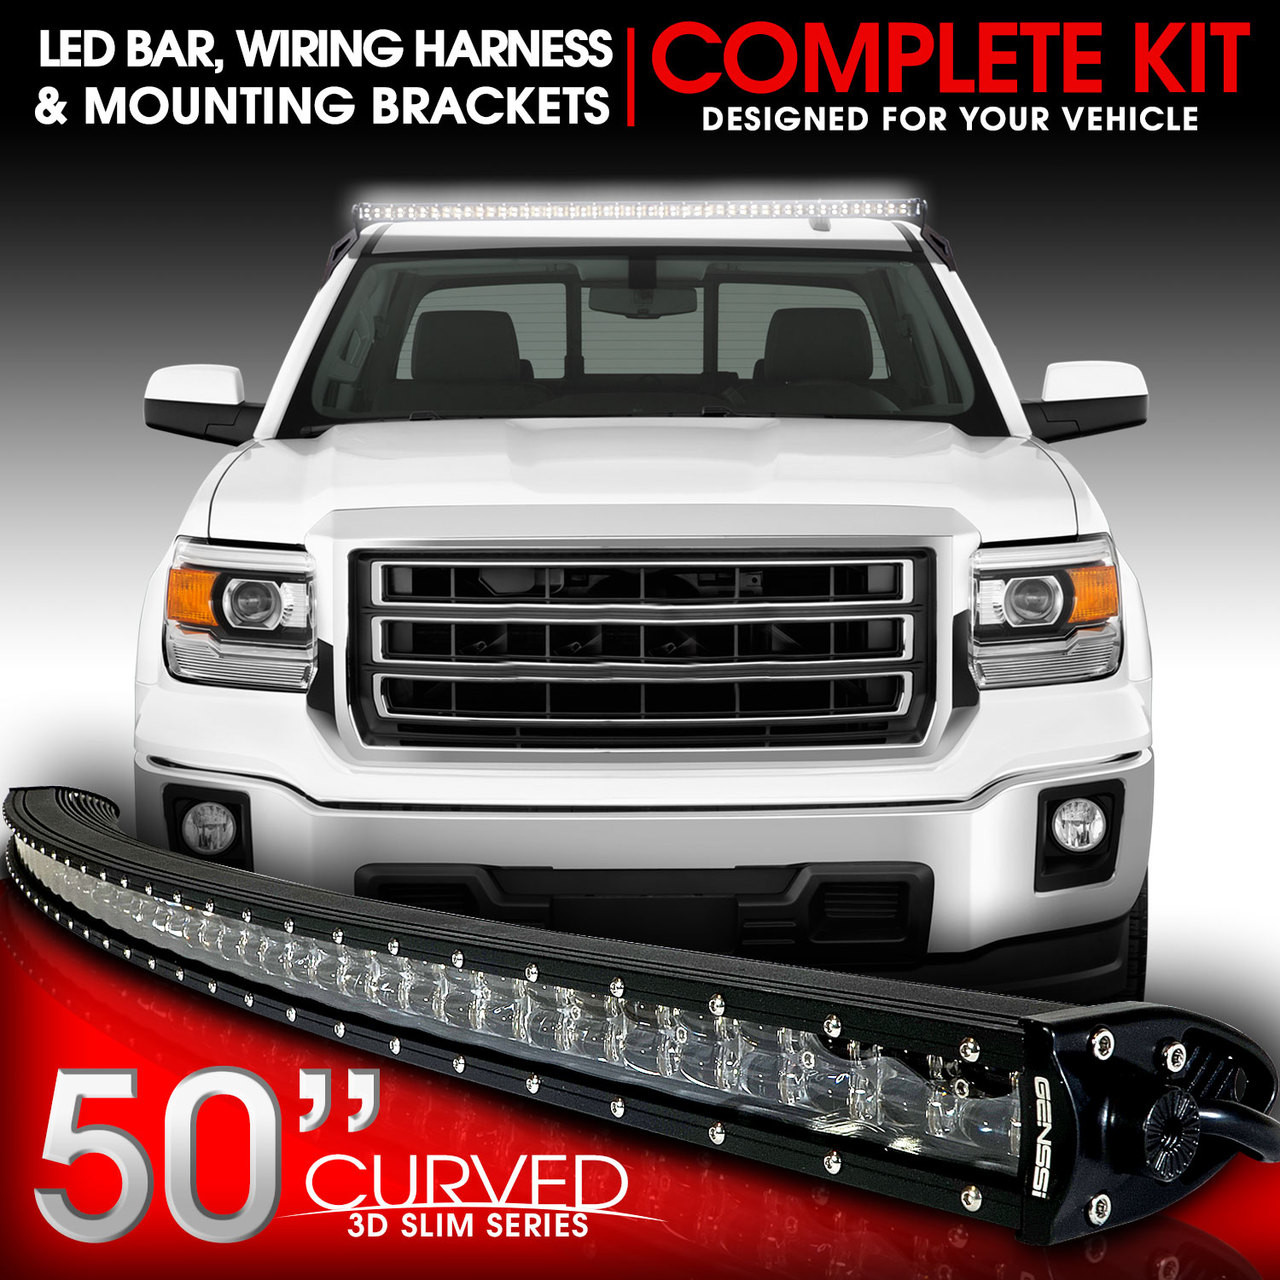 LED Lighting - Automotive Lighting - LED Light Bars - Vehicle ...